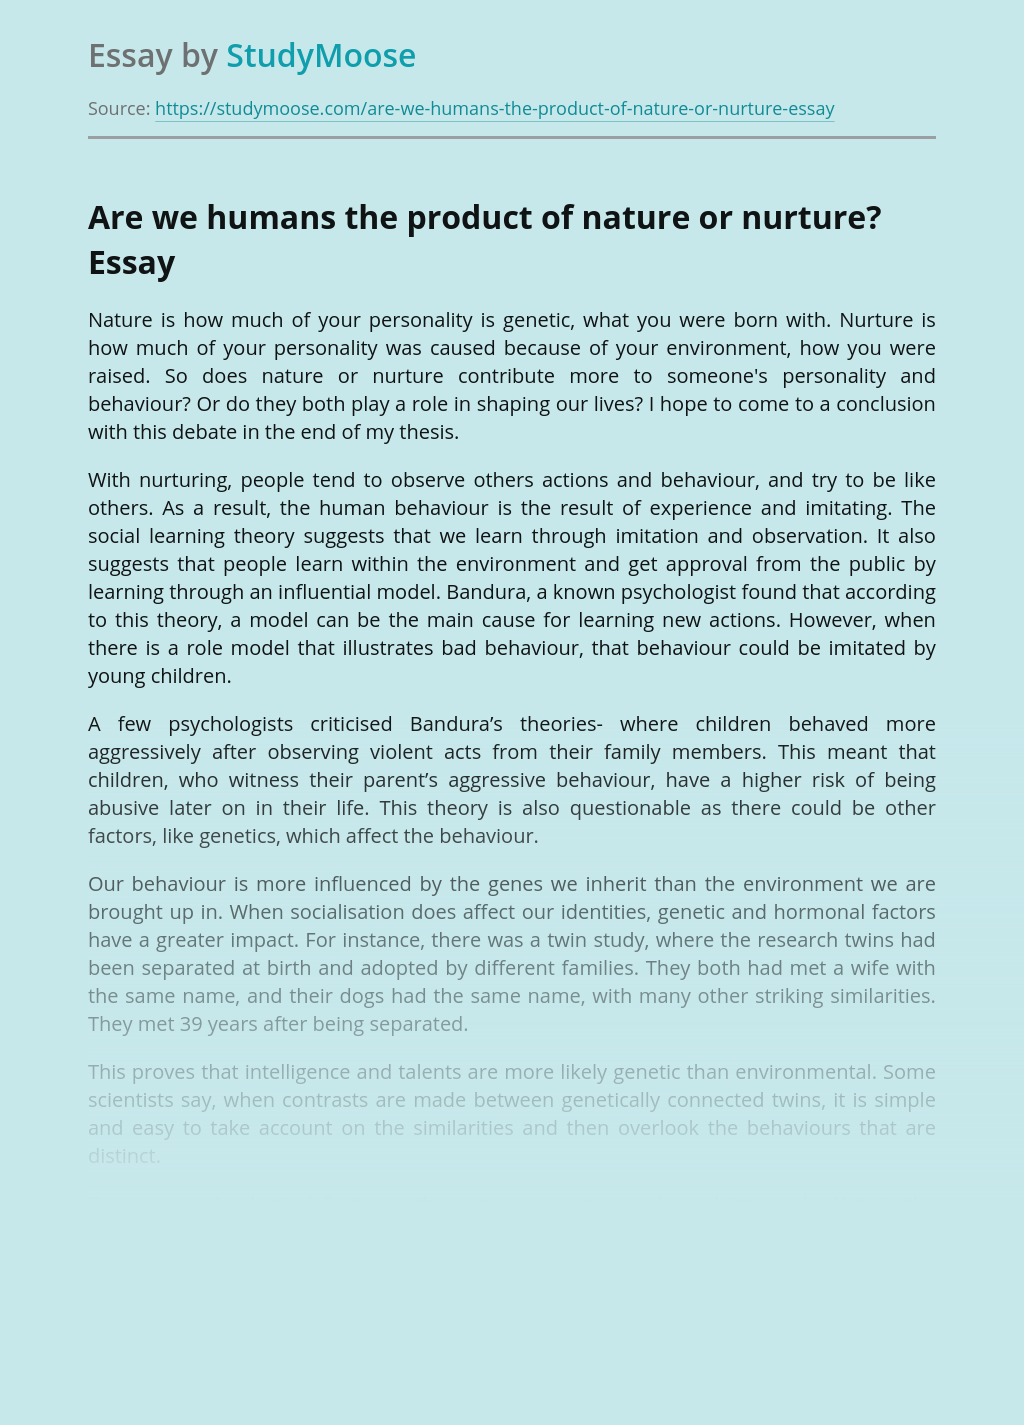 Are we humans the product of nature or nurture?